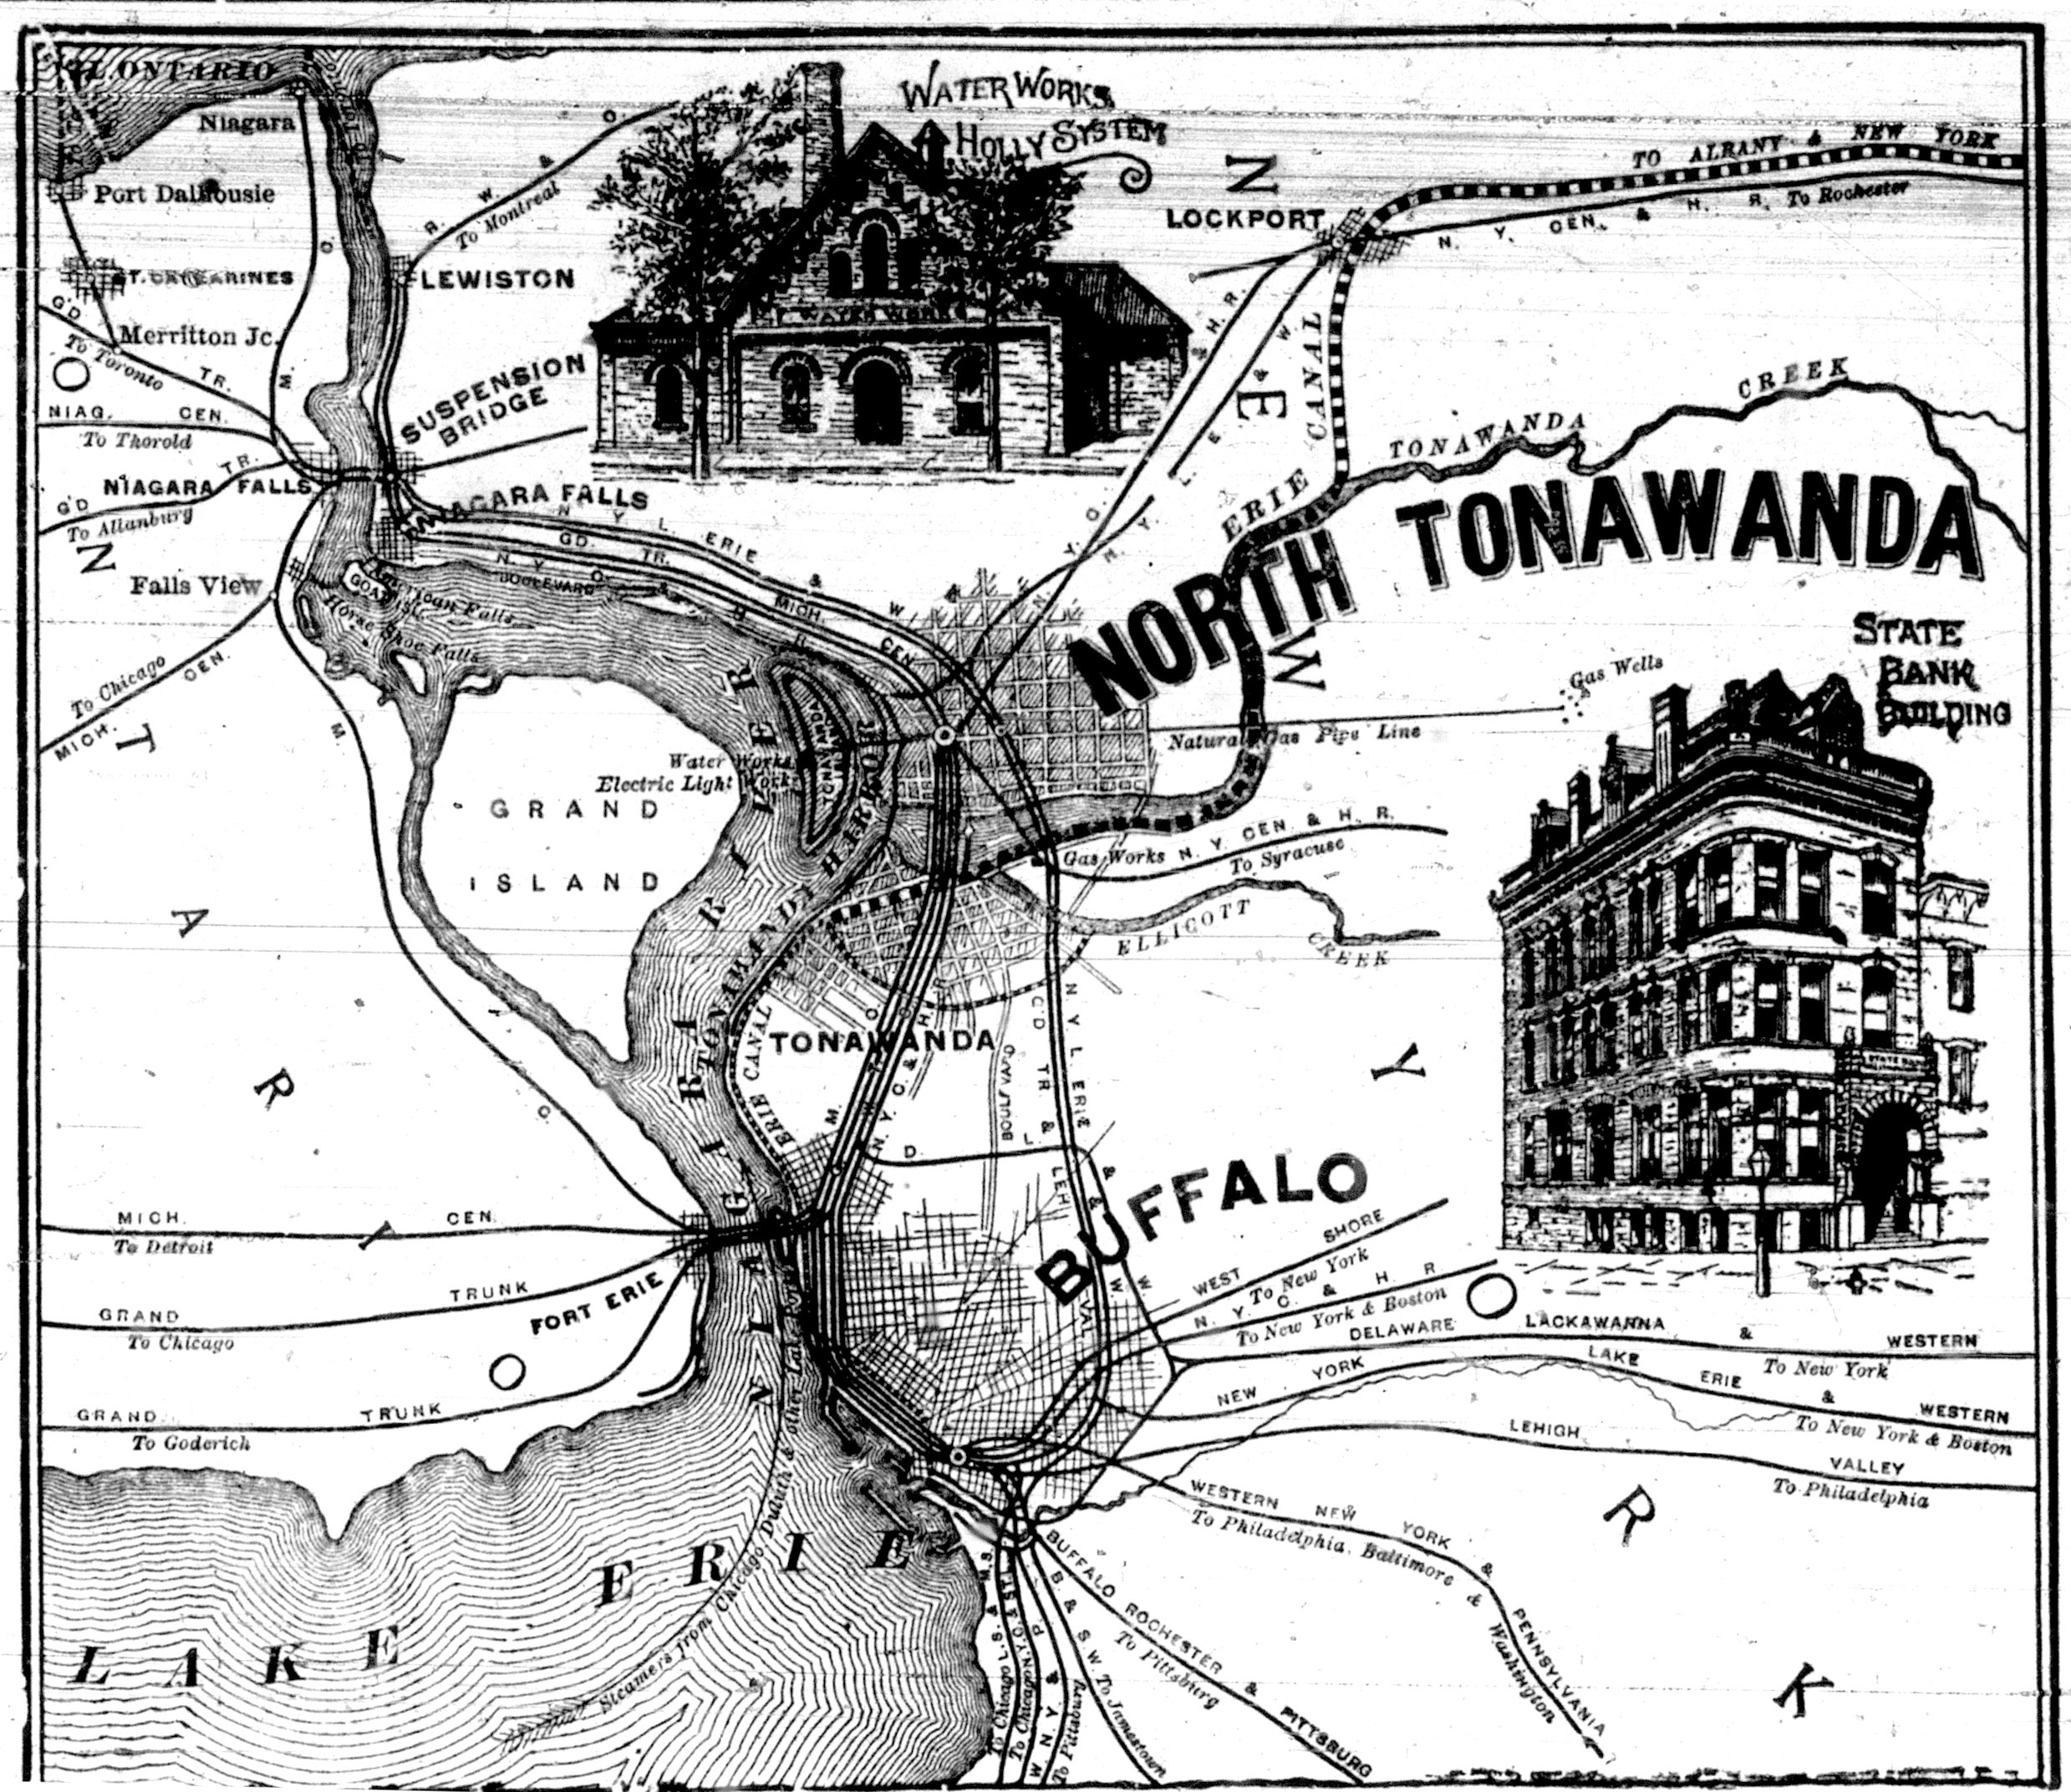 North Tonawanda Map, Waterworks Holly System, State Bank Building, illustration (1893-08-05 Tonawanda News).jpg